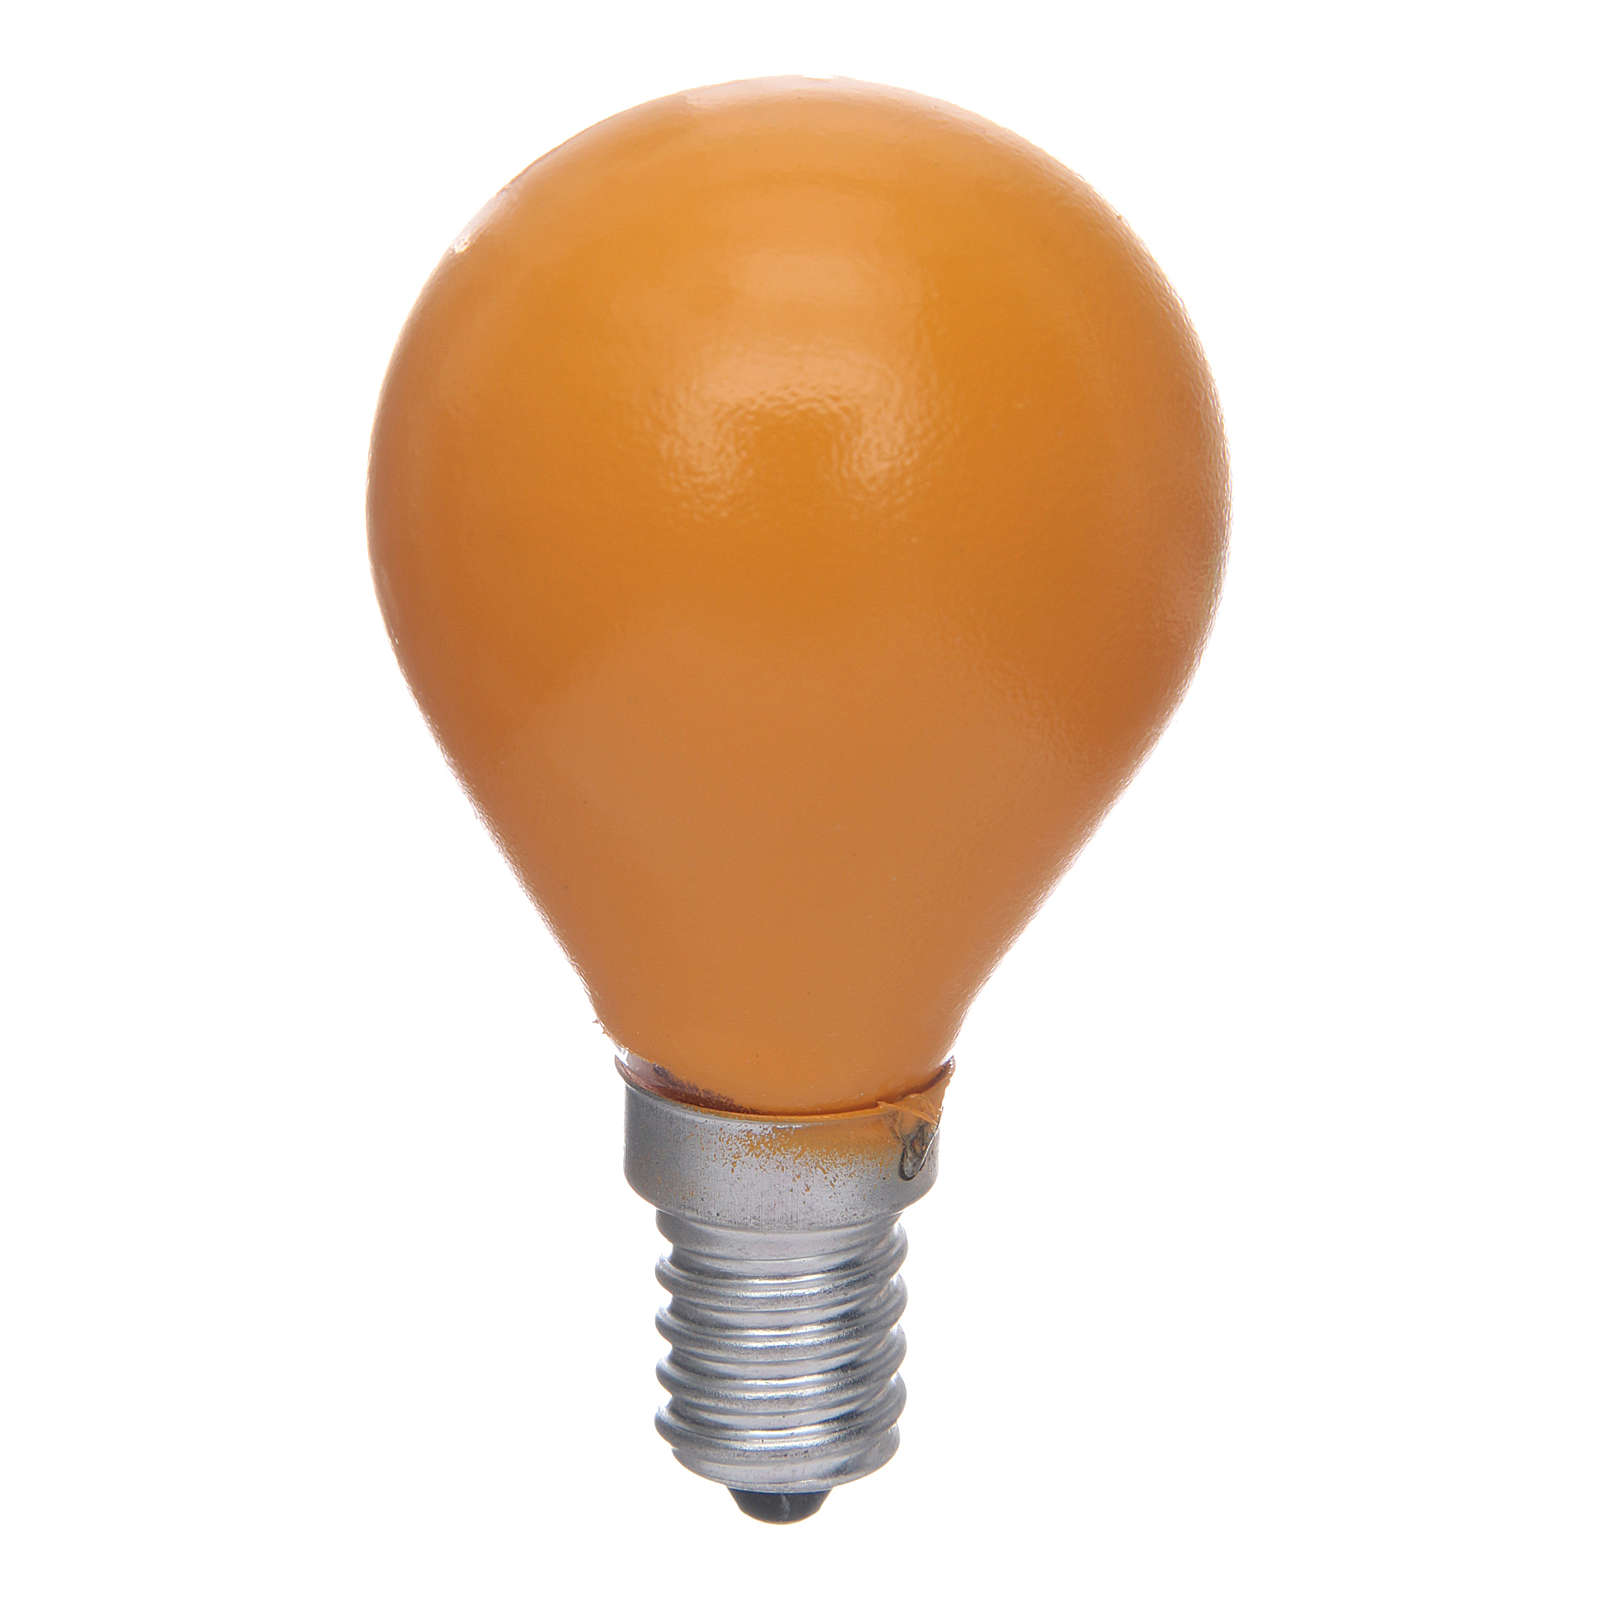 Sphere lamp E14 25W Yellow 4